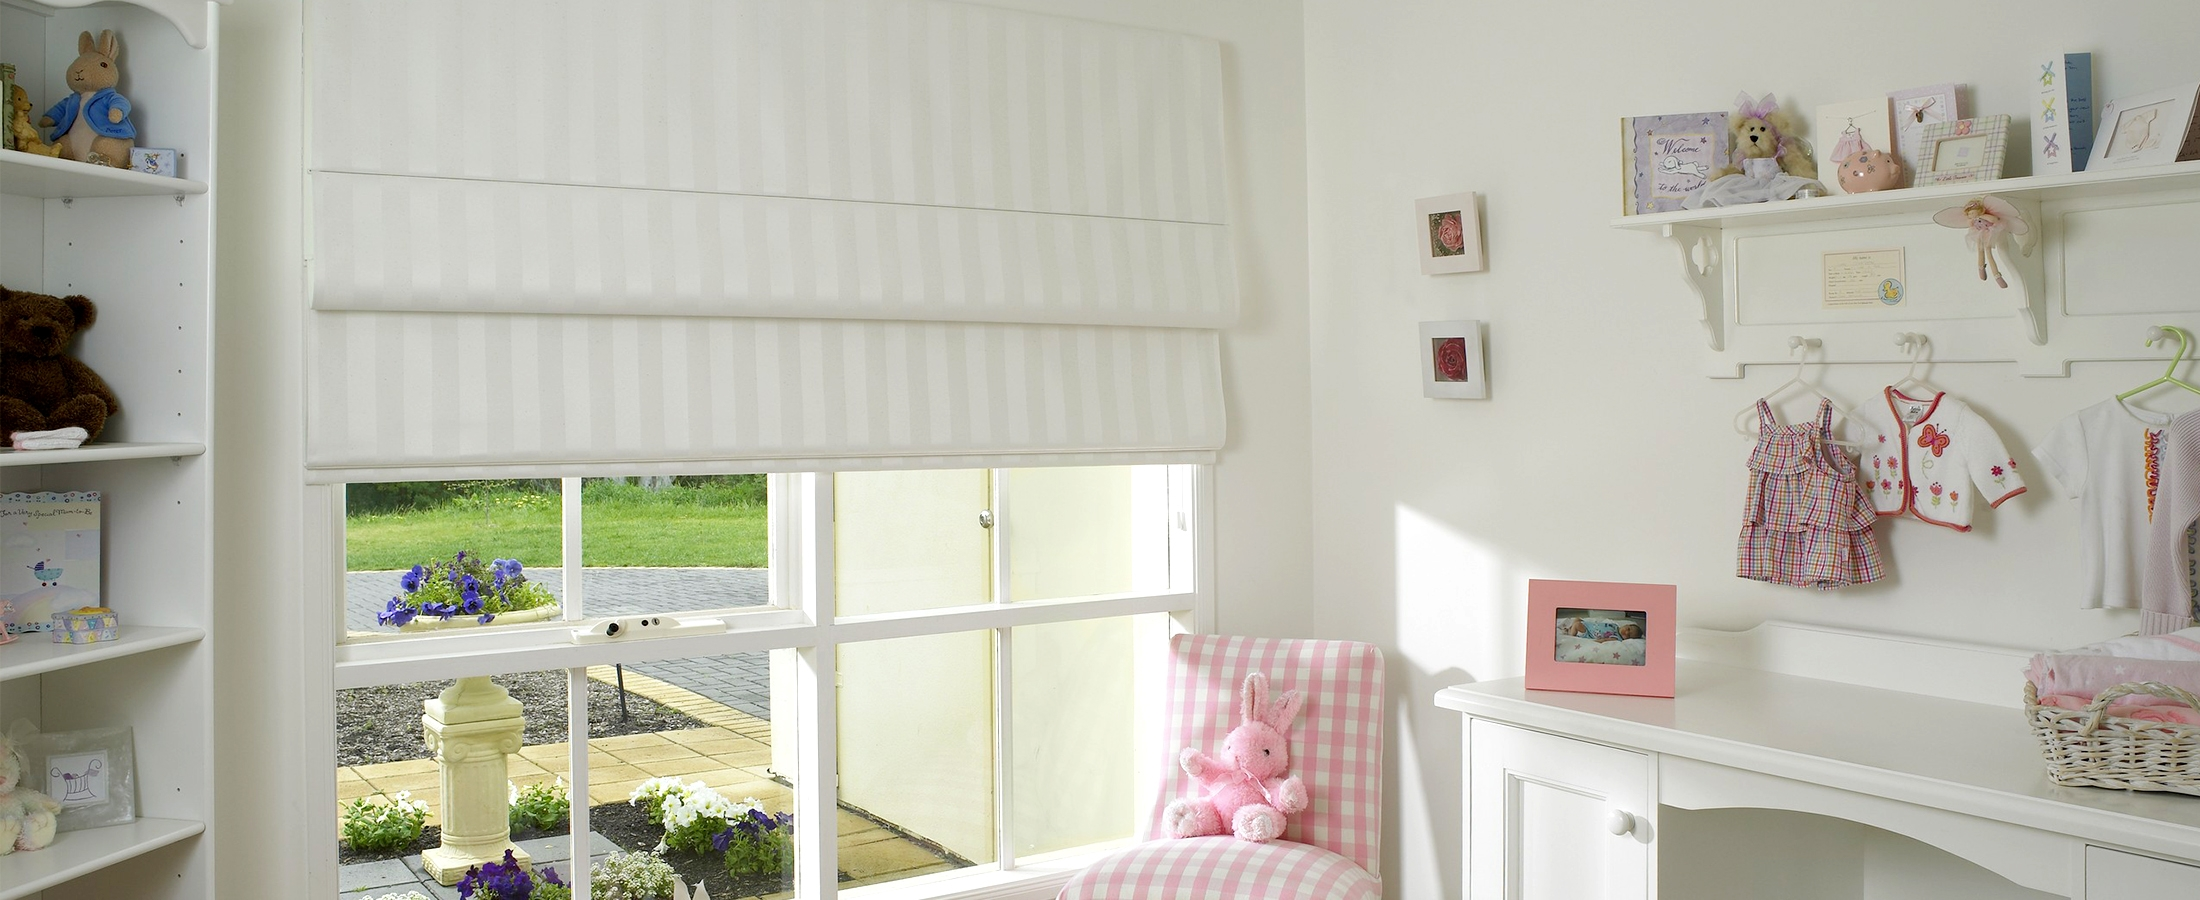 Superior Roman Blinds Perth Abc Blinds Biggest Best Inside Pattern Blinds (Image 14 of 15)